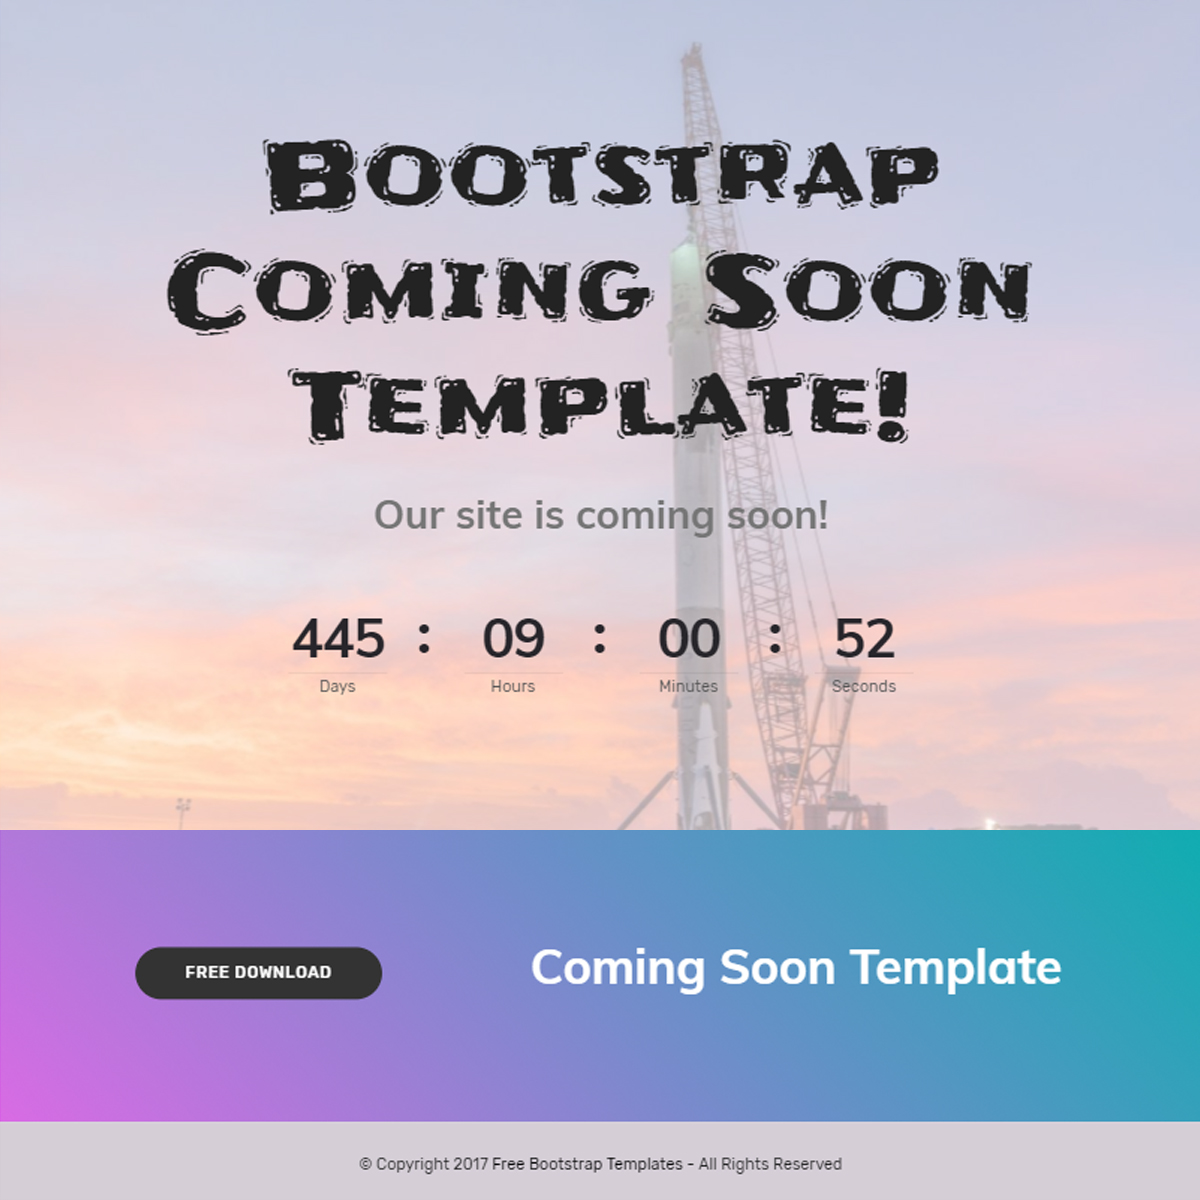 Free Bootstrap Coming Soon Templates